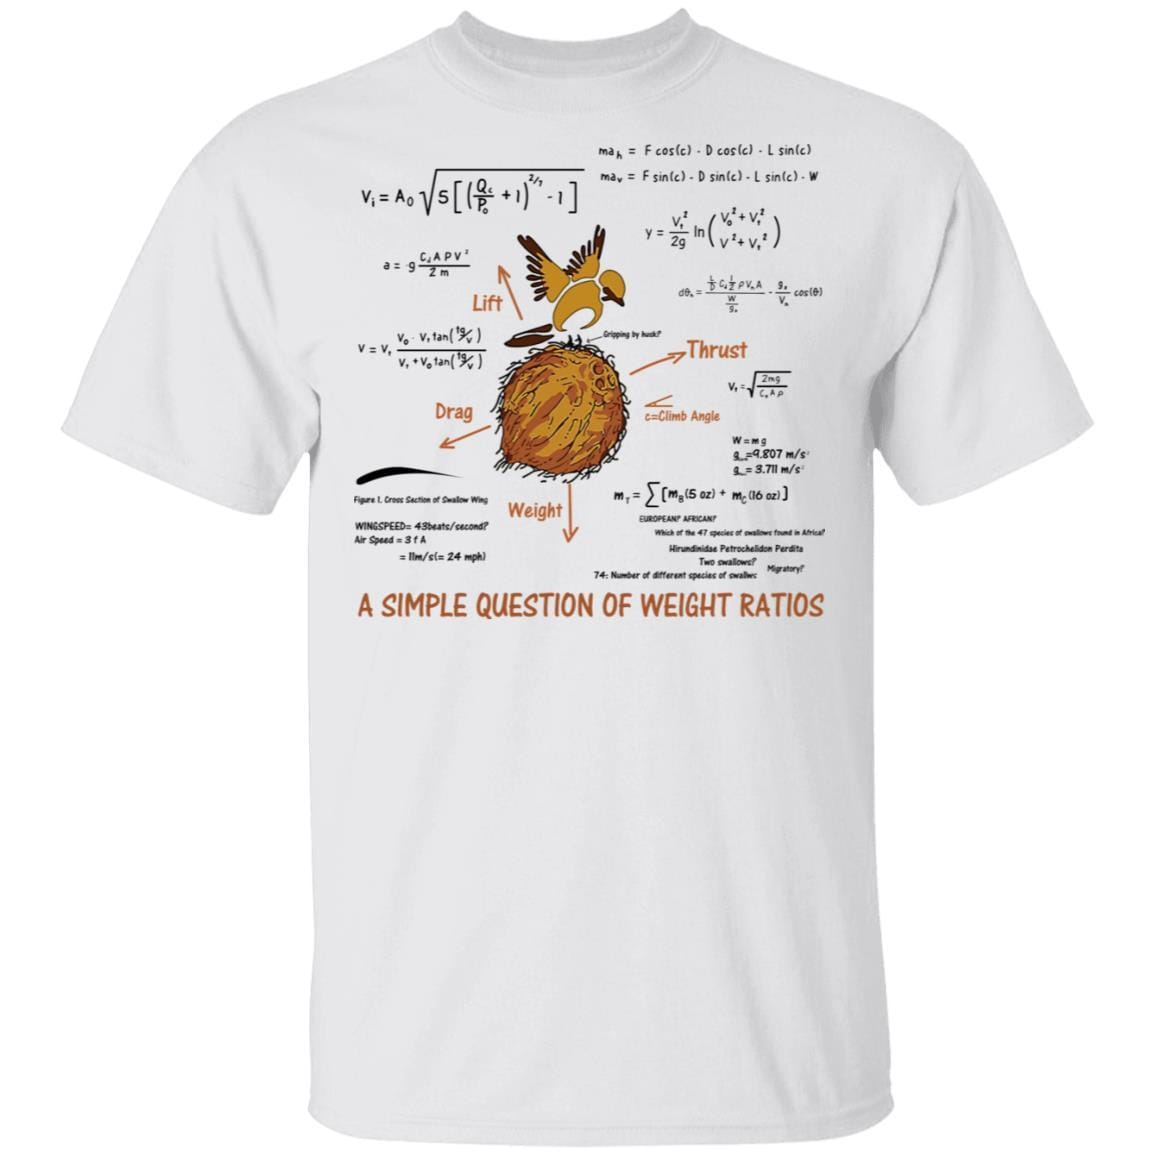 A Simple Question Of Weight Ratios Funny Math Teacher T-Shirts, Hoodies 1049-9974-91517264-48300 - Tee Ript